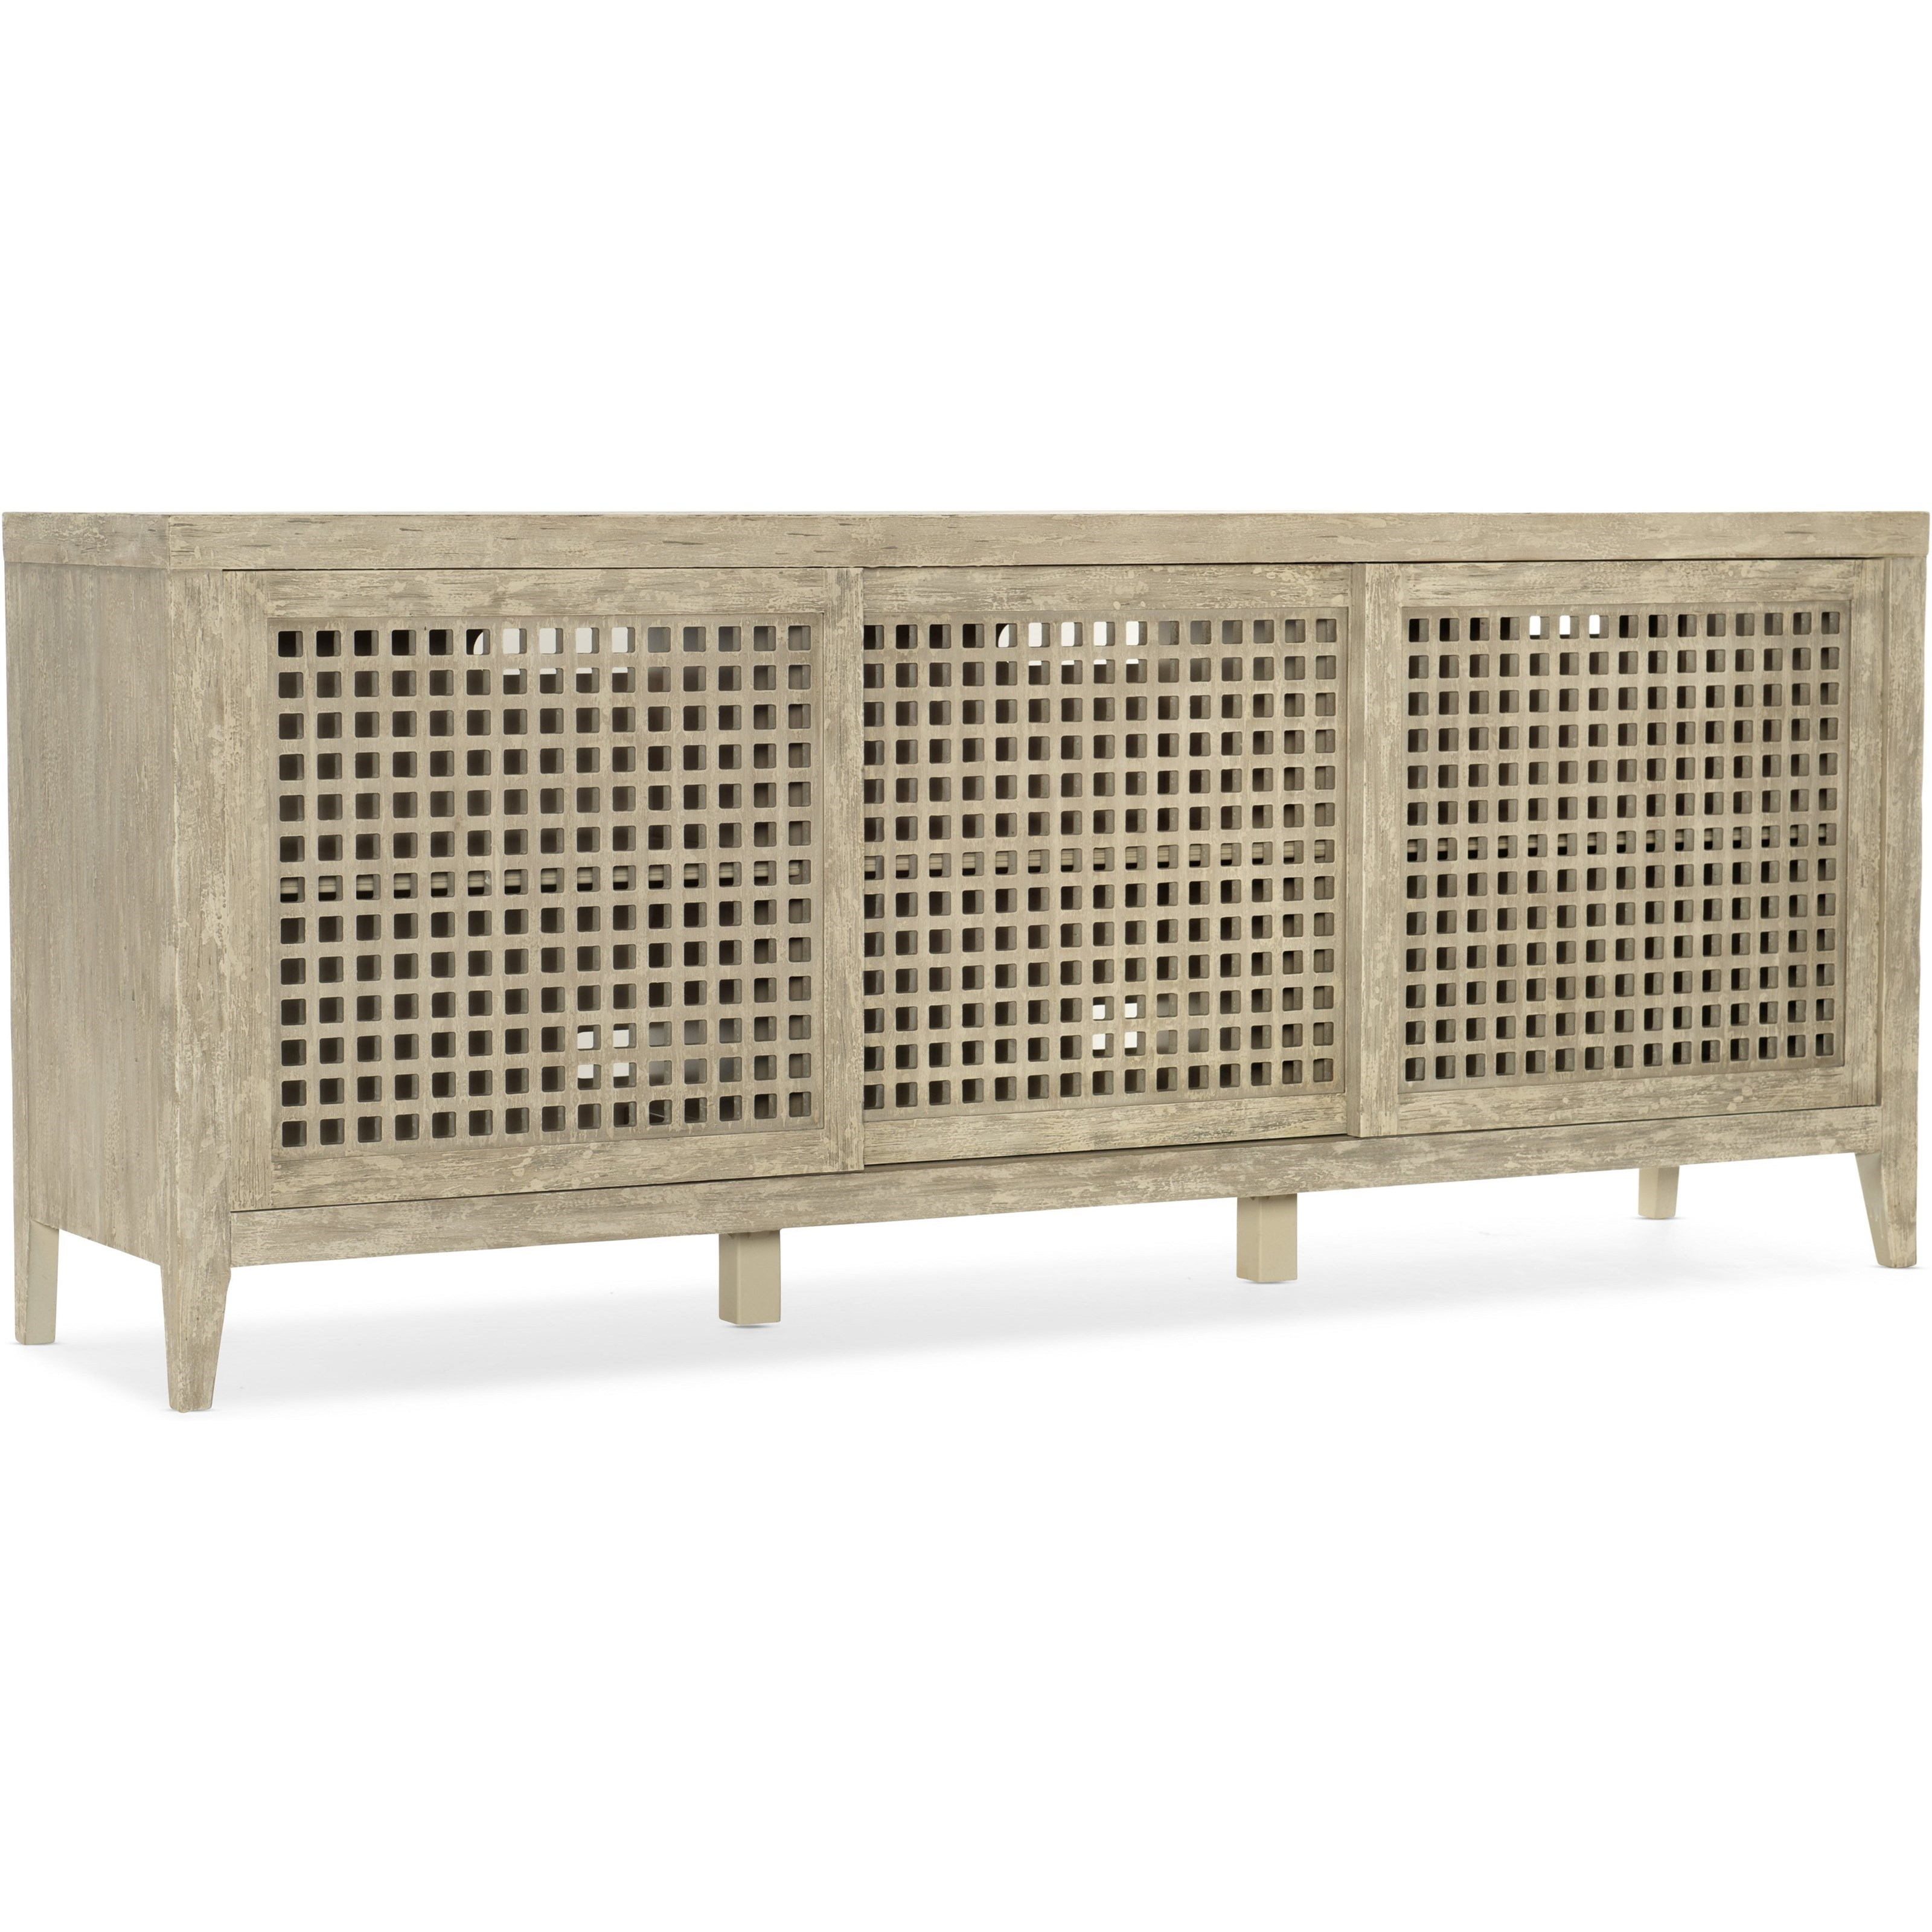 Ciao Bella Entertainment Console by Hooker Furniture at Miller Waldrop Furniture and Decor